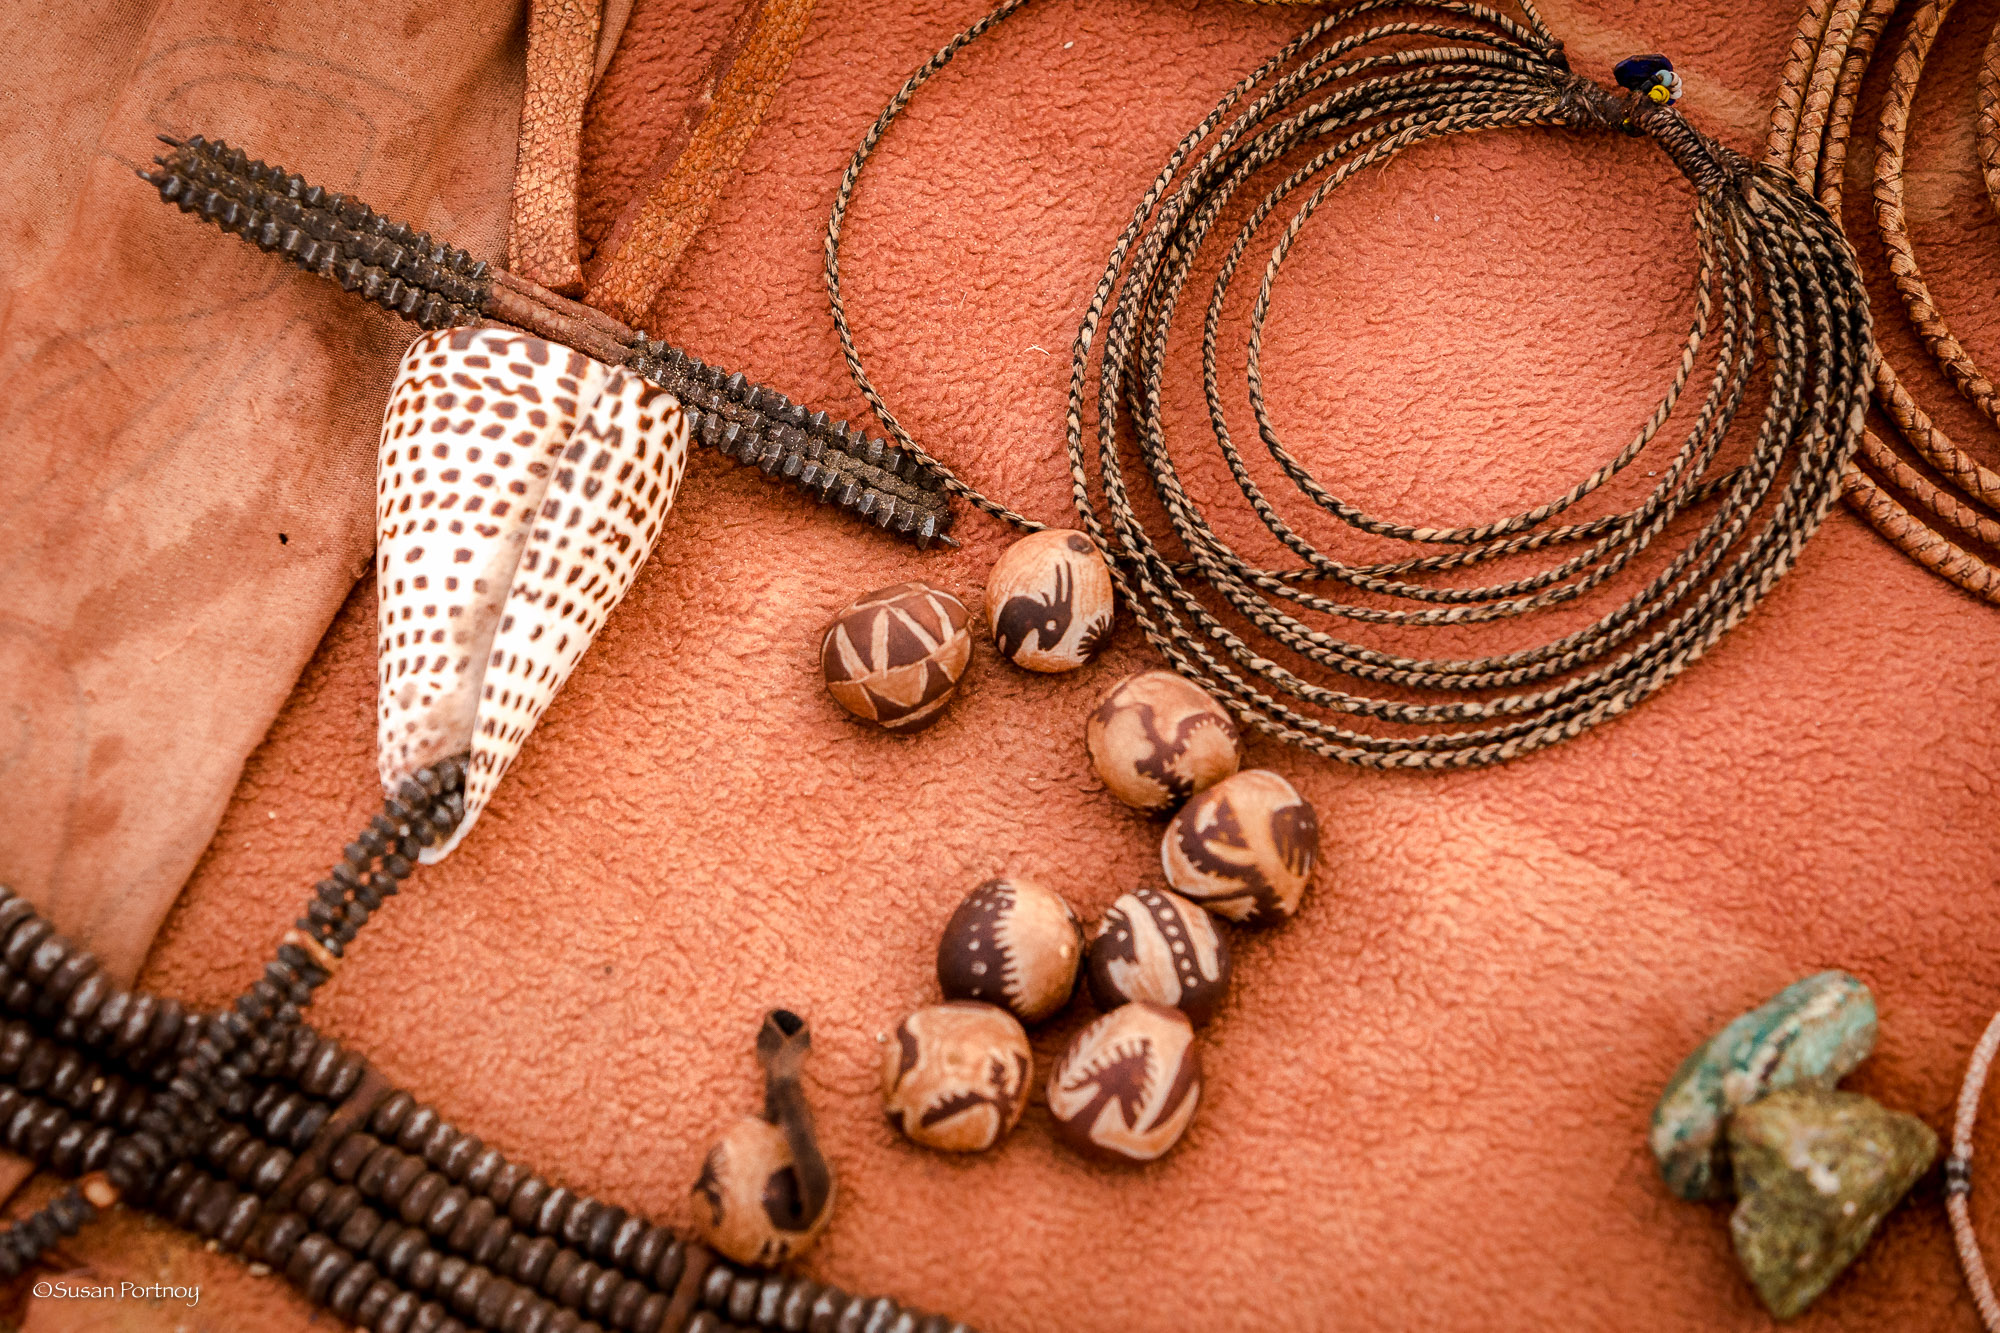 Some of the handmade jewelry the Himba were selling during my visit